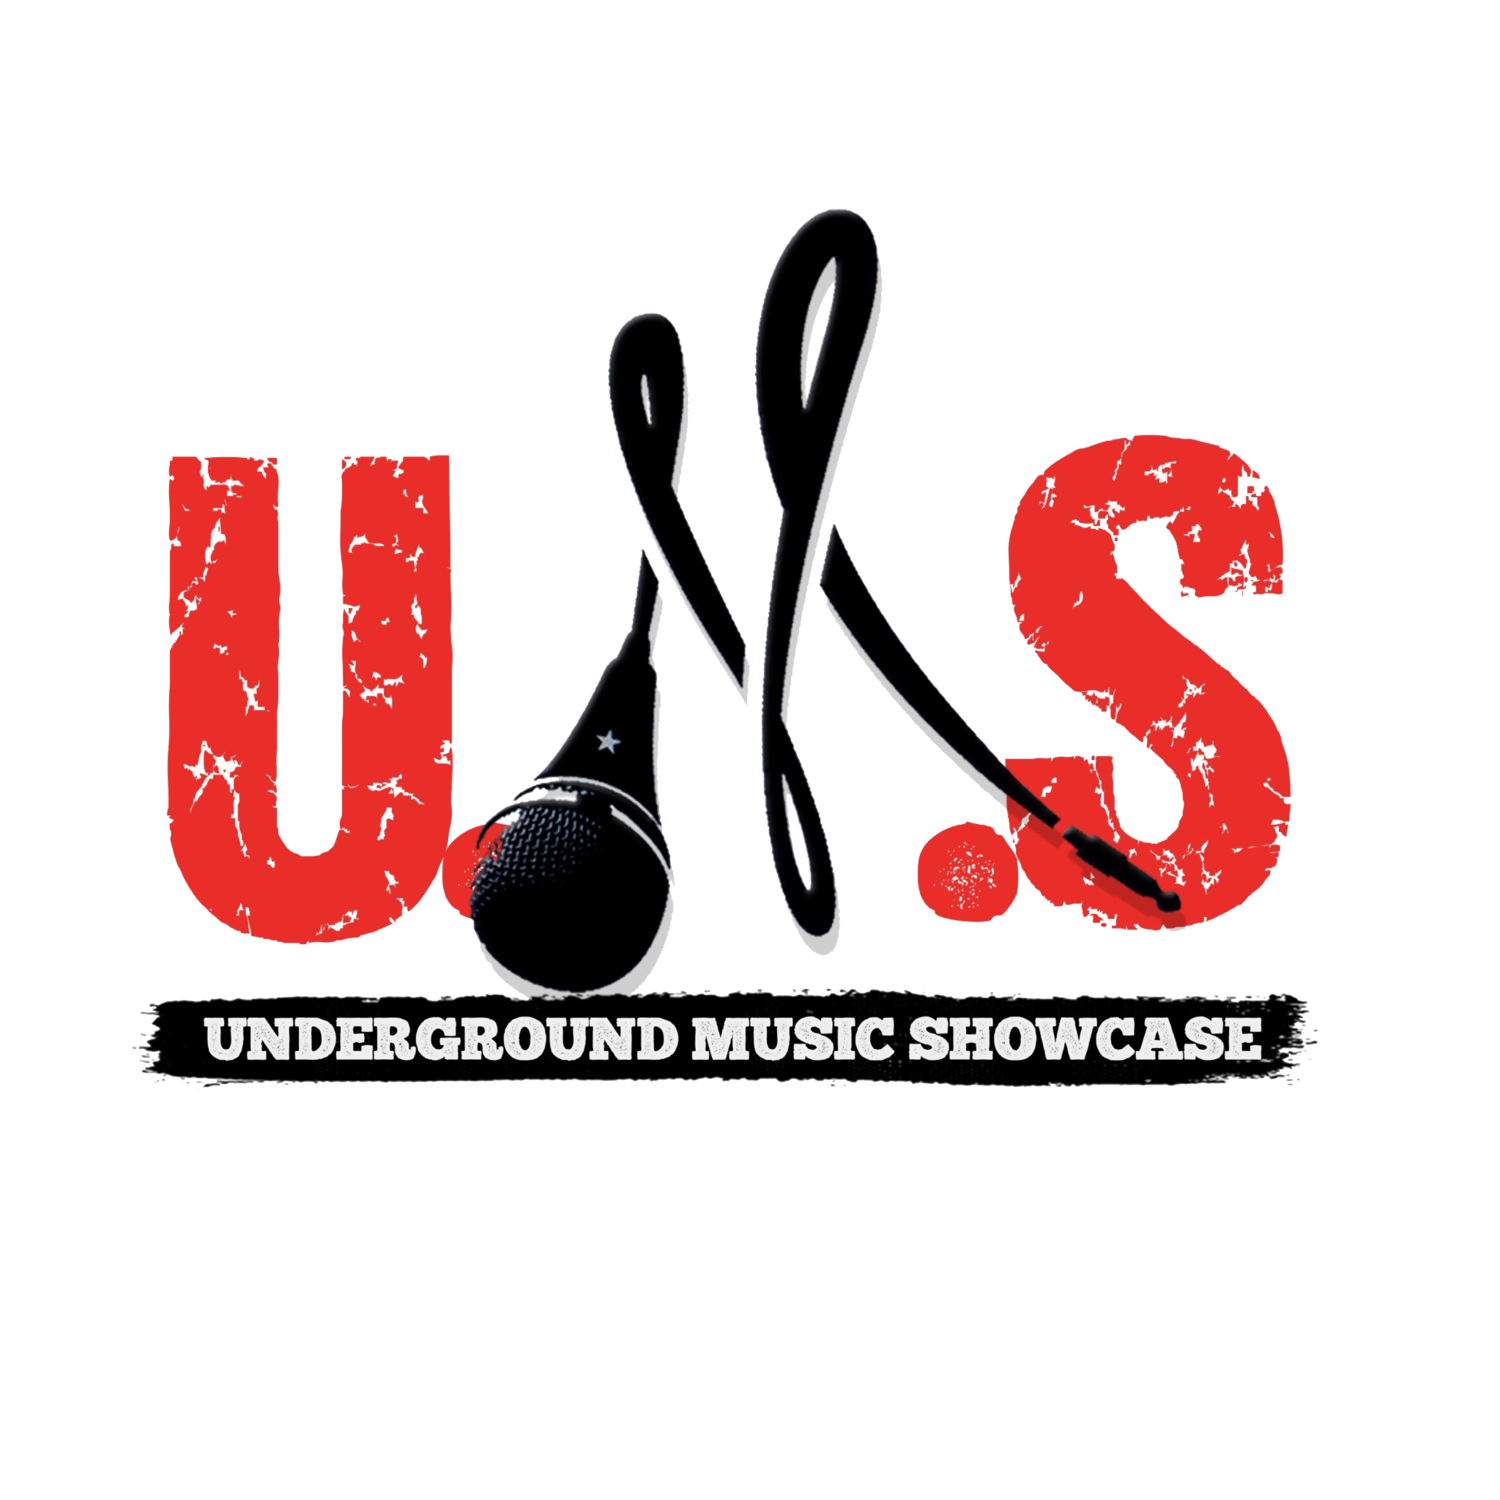 Underground Music Showcase #ForTheCulture